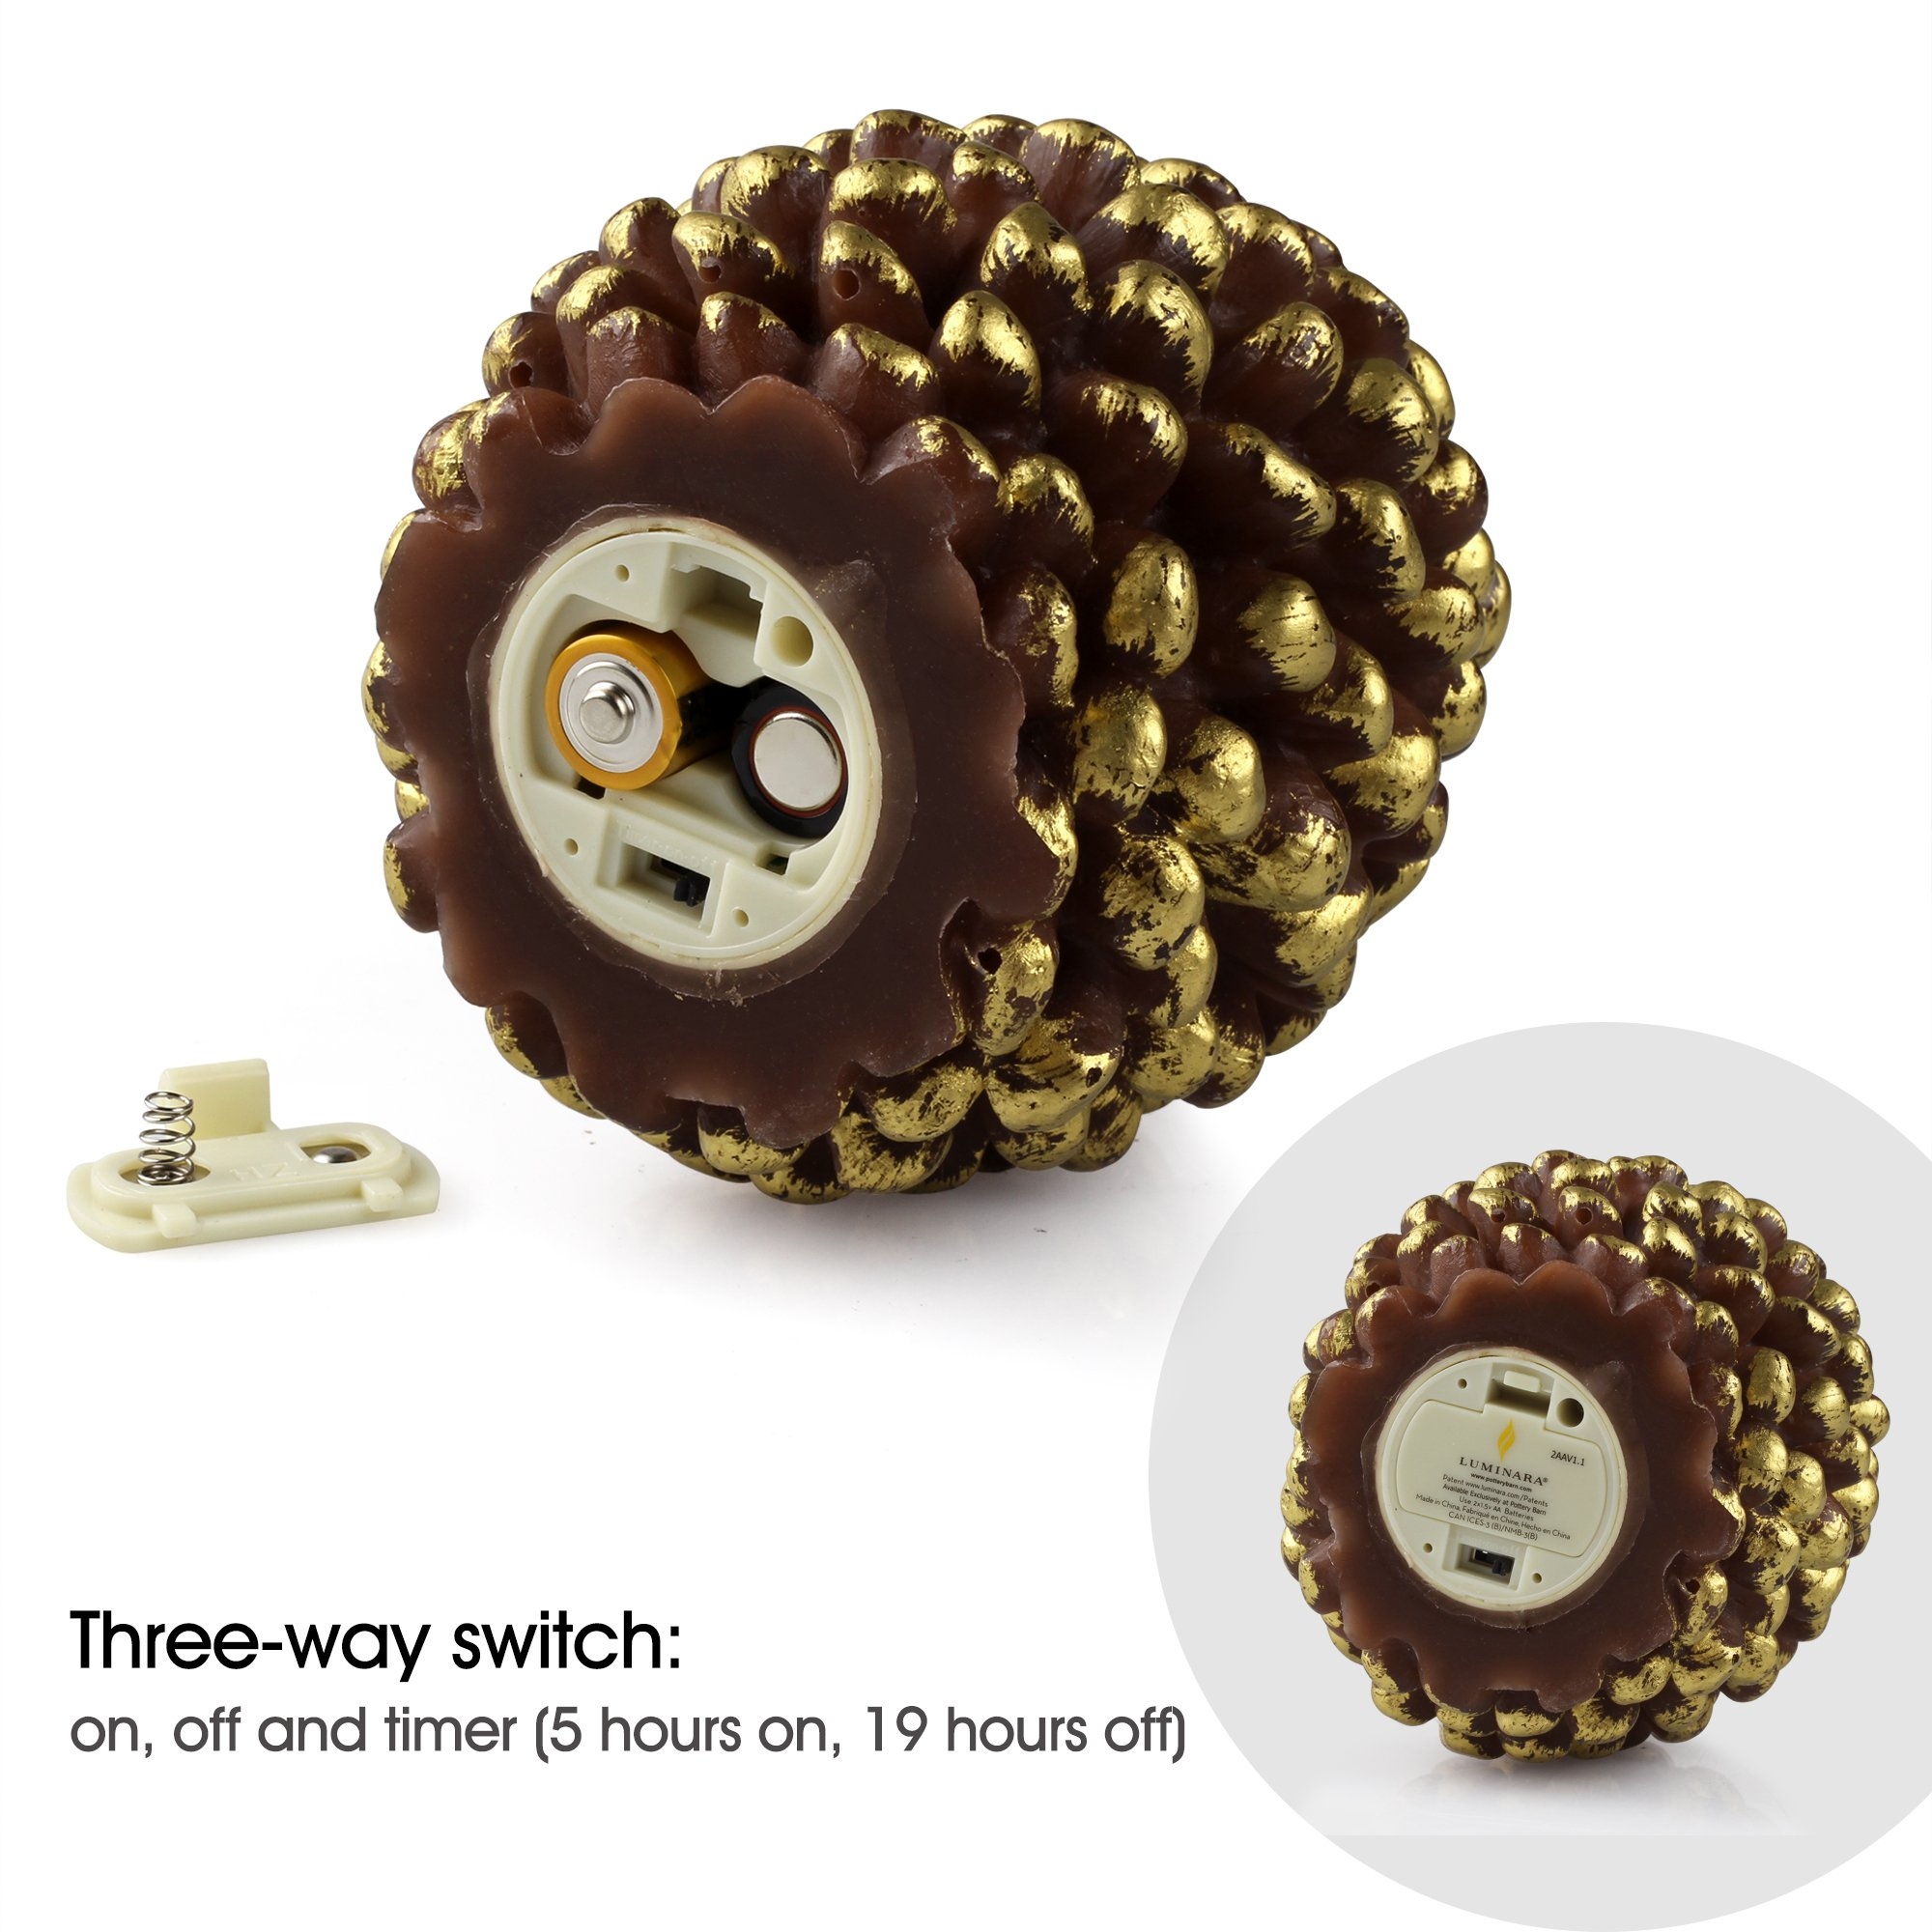 Luminara LED Flameless Candle, Flameless Real Pine Cone LED Candles for Home/Party/Halloween/Christmas/Wedding Decor with Timer Control, Battery Operated 3'' x 4.2''(Brown) by iDOO (Image #3)